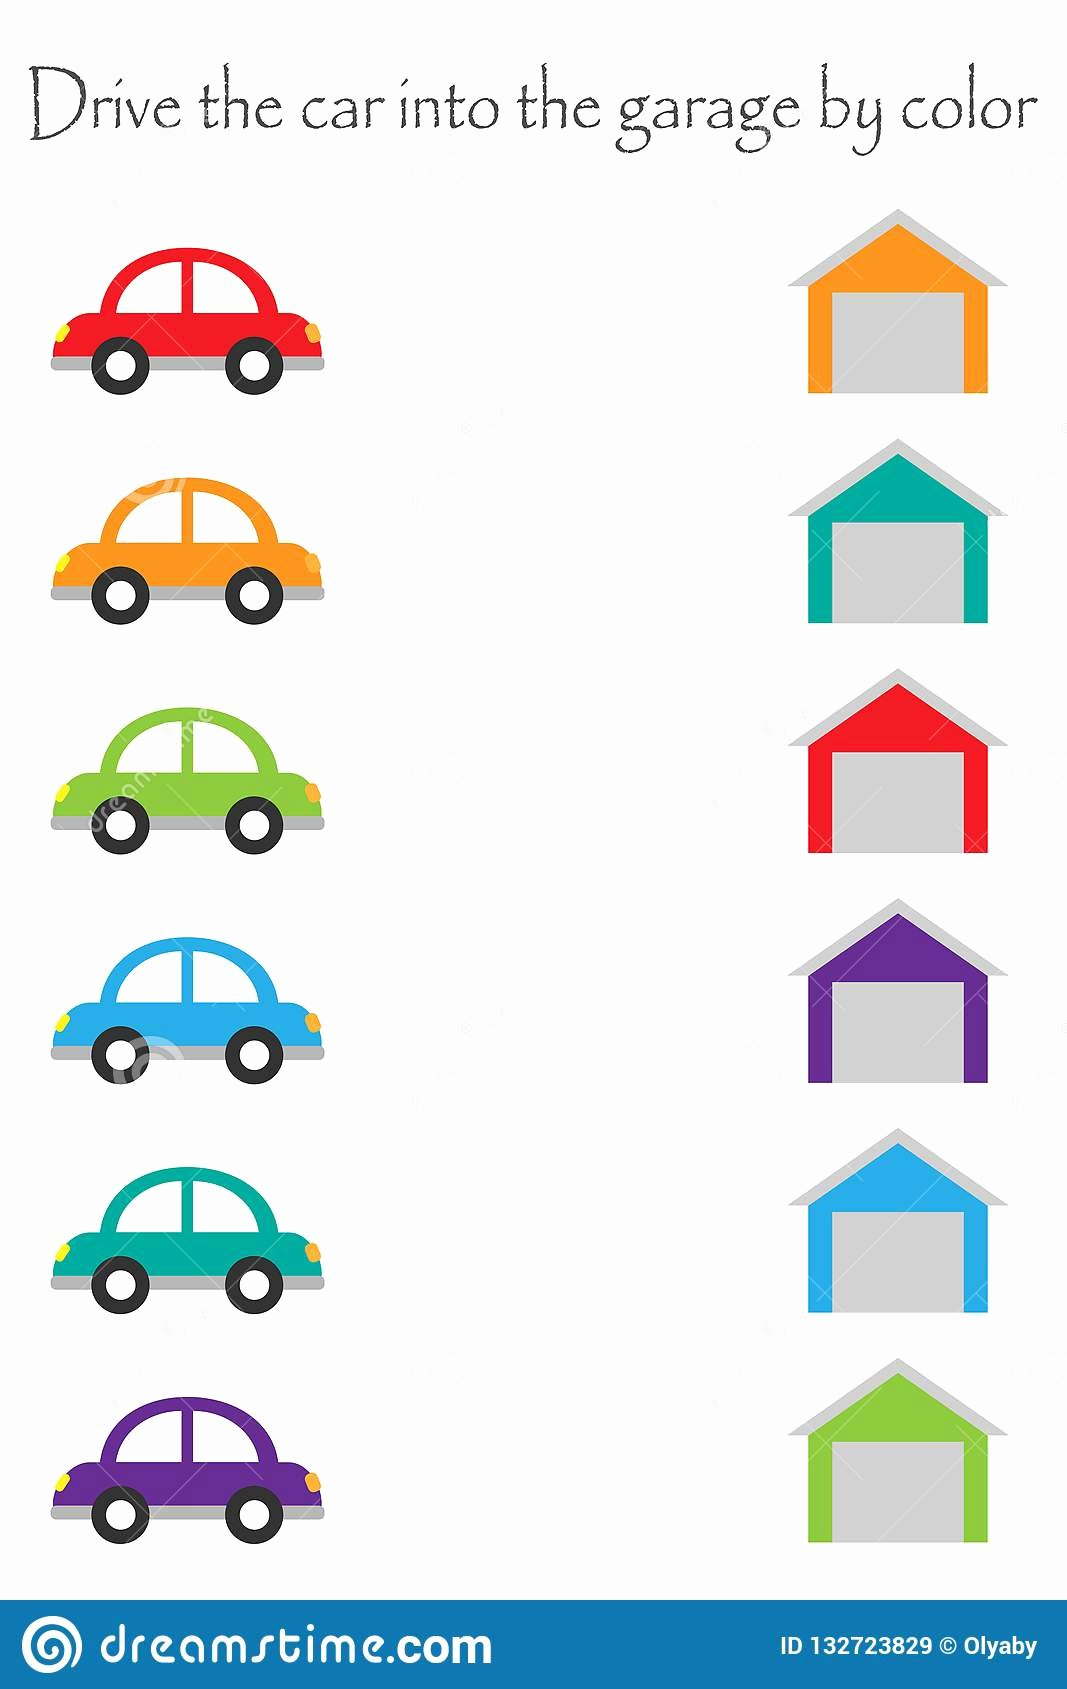 Car Worksheets for Preschoolers Kids Drive Colorful Cars In Cartoon Style Into Garages by Color